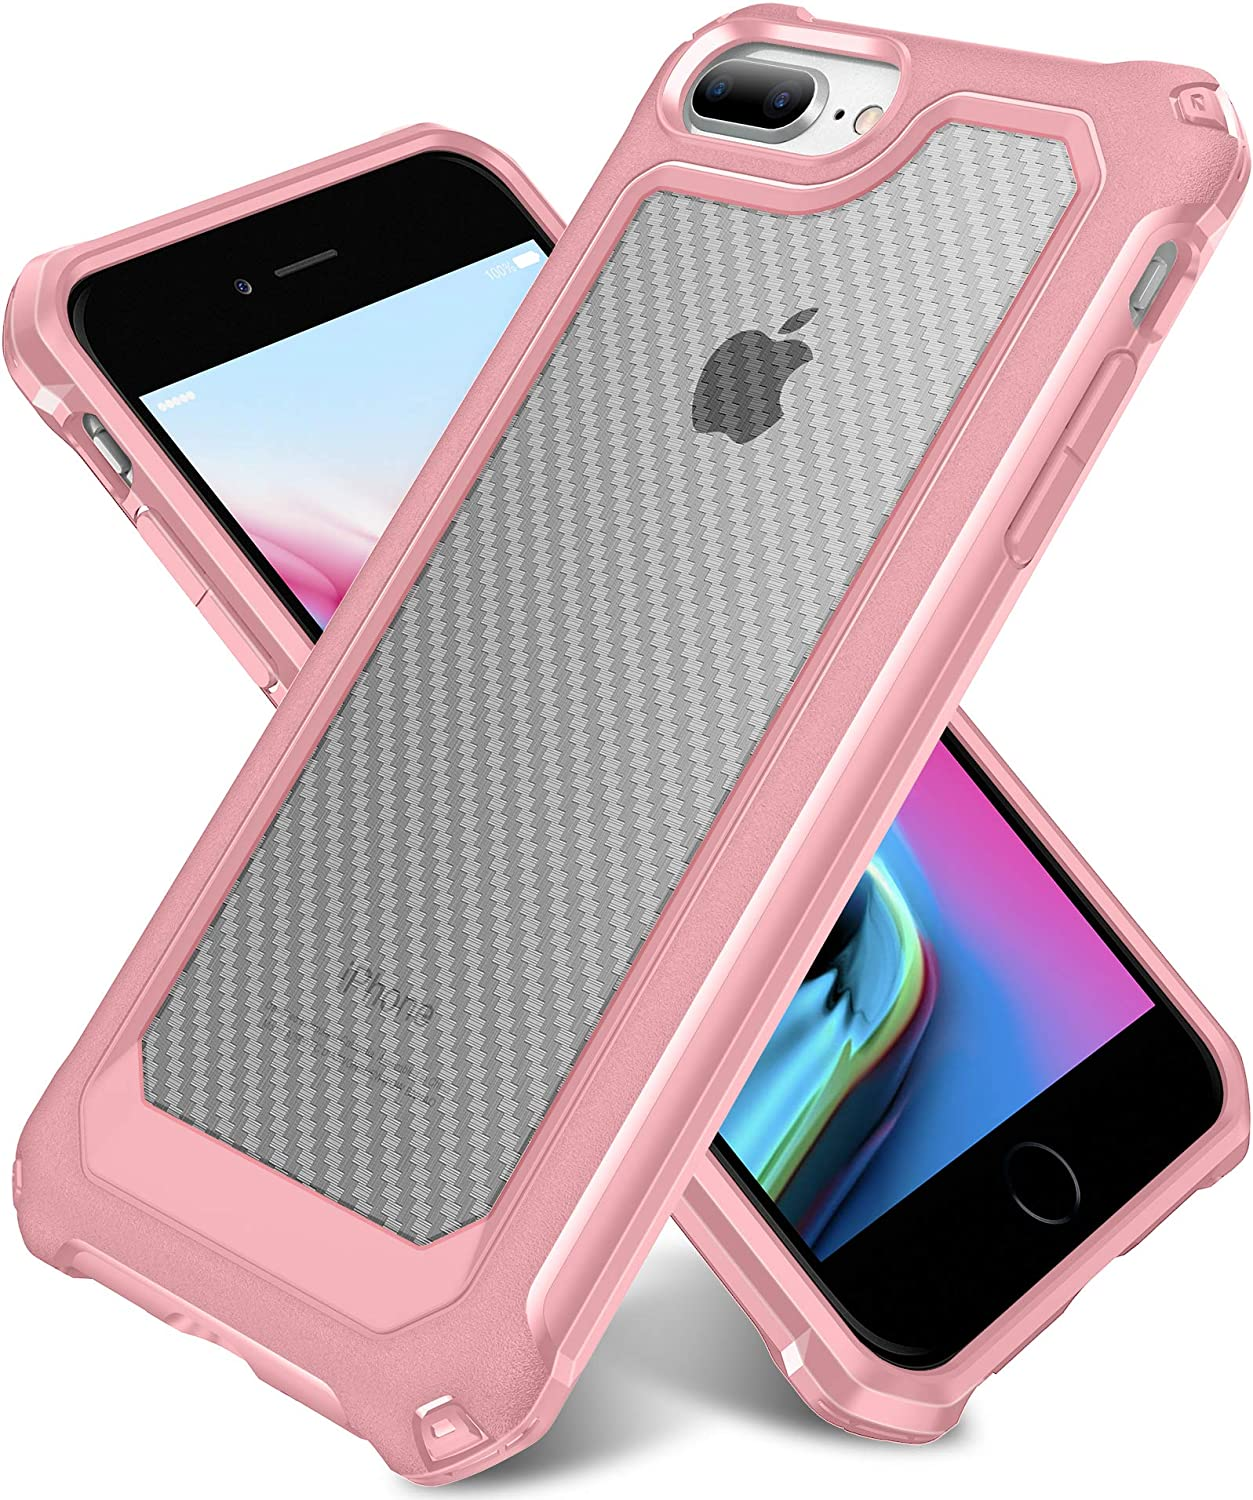 iPhone 8 Plus Case, iPhone 7 Plus Case, SUPBEC Slim Carbon Fiber Shockproof Protective Cover with Screen Protector [x2] [Military Grade Drop Protection] [Anti Scratch&Fingerprint], 5.5